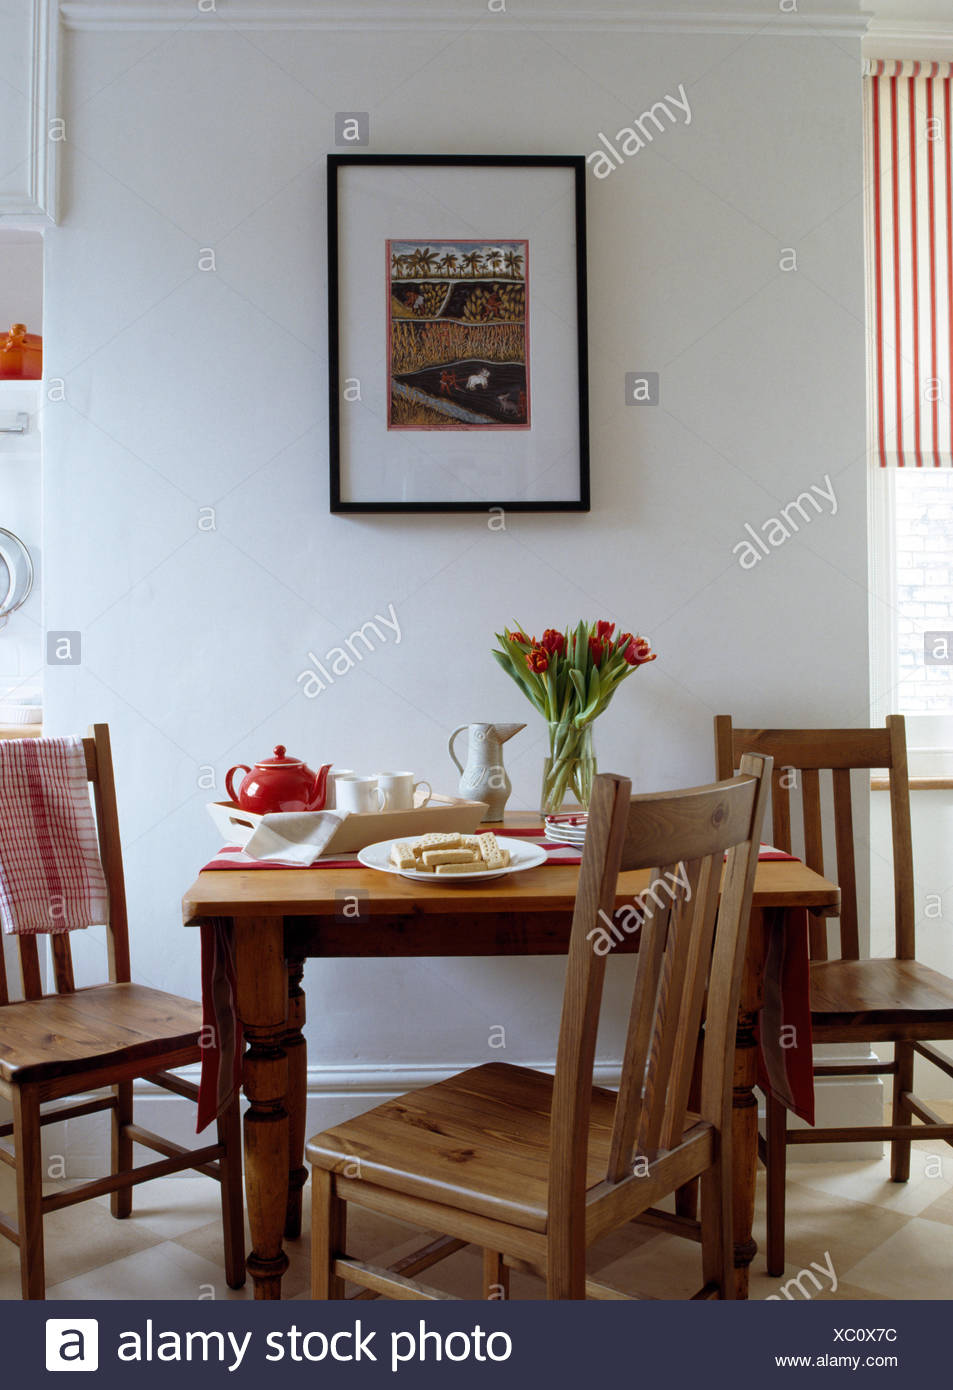 Fabulous Plain Wooden Chairs And Old Pine Dining Table In White Andrewgaddart Wooden Chair Designs For Living Room Andrewgaddartcom